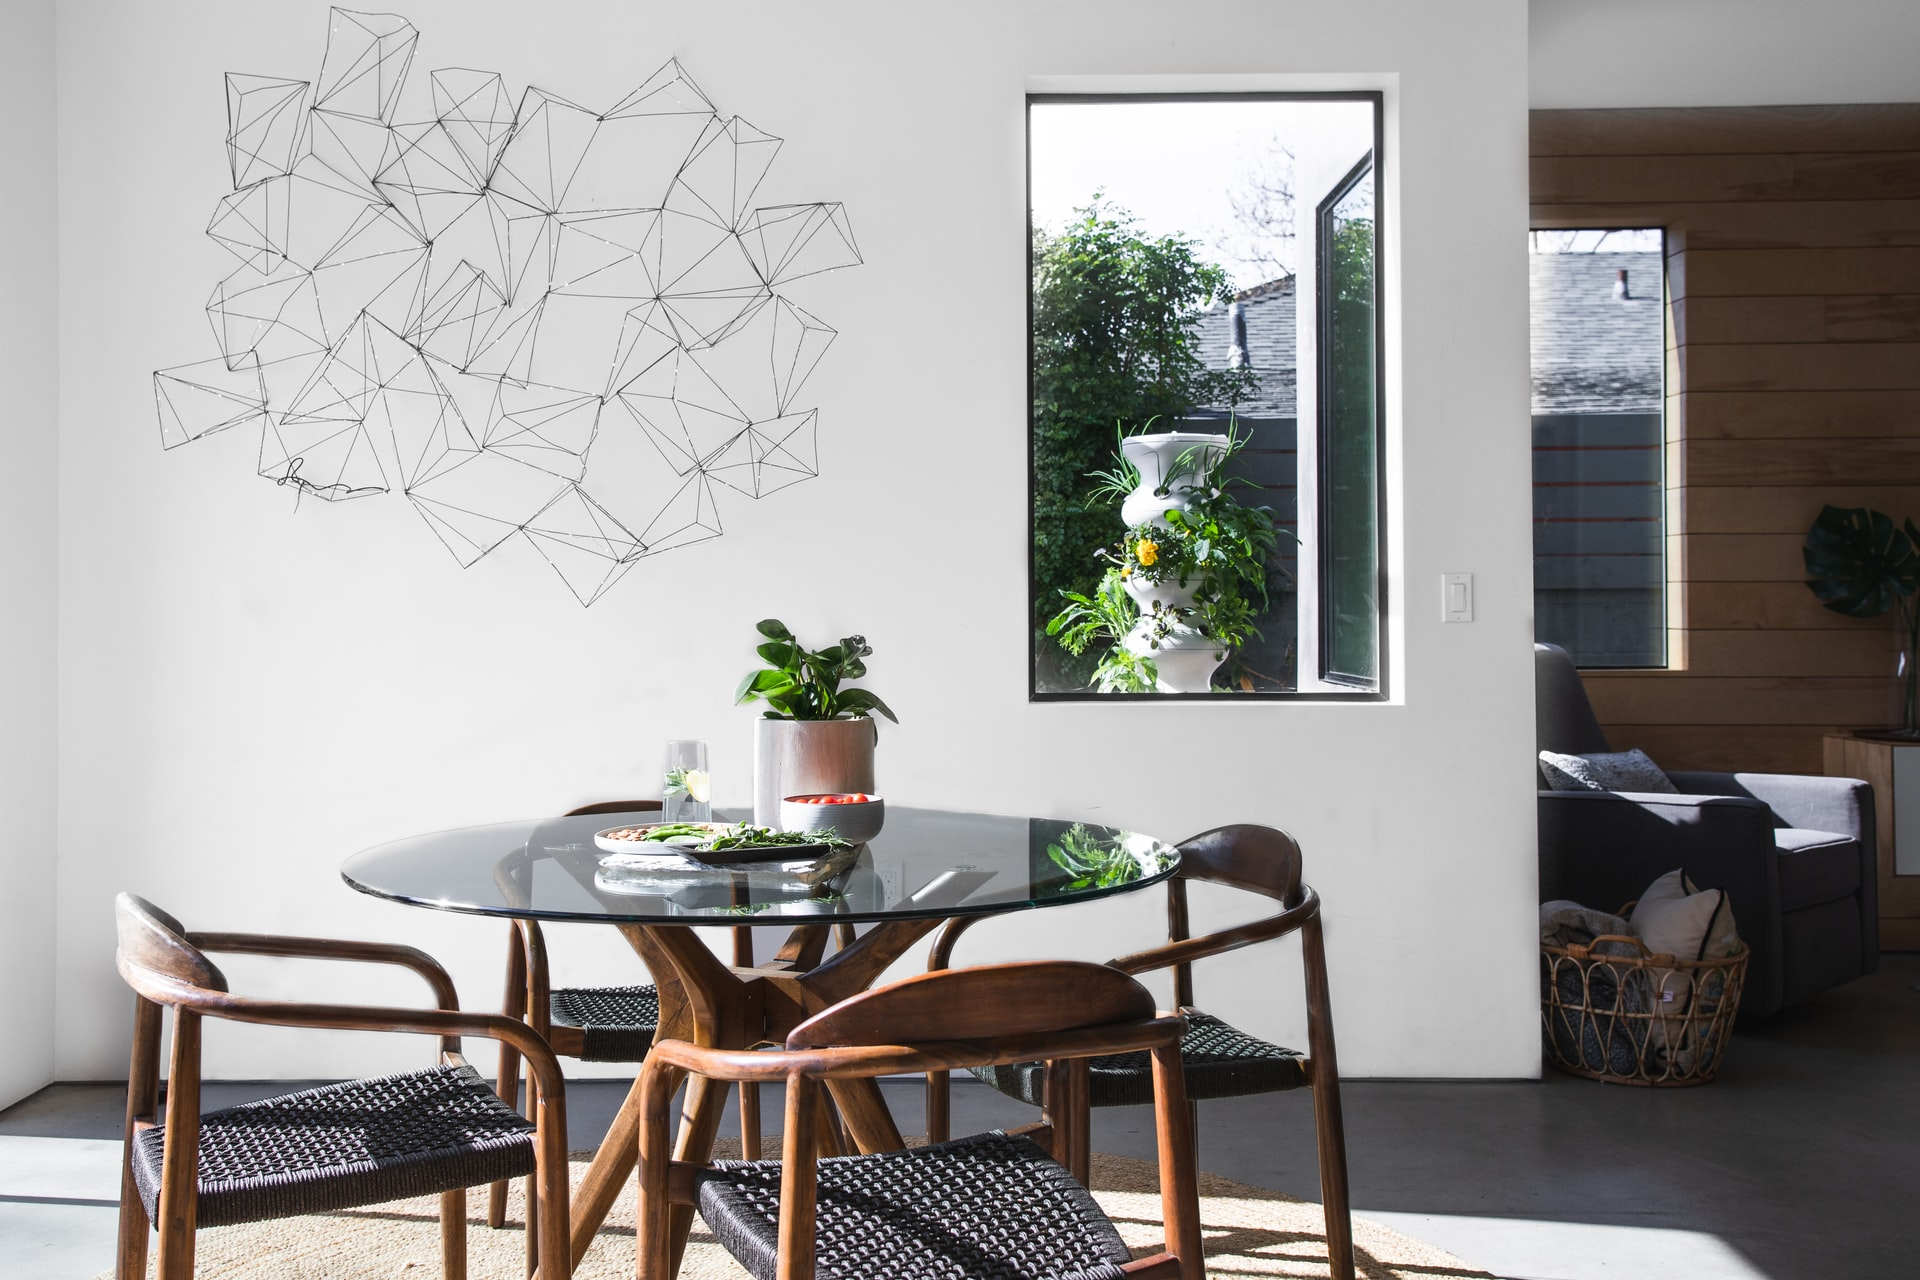 7 Aspects To Look For While Choosing A Dining Table